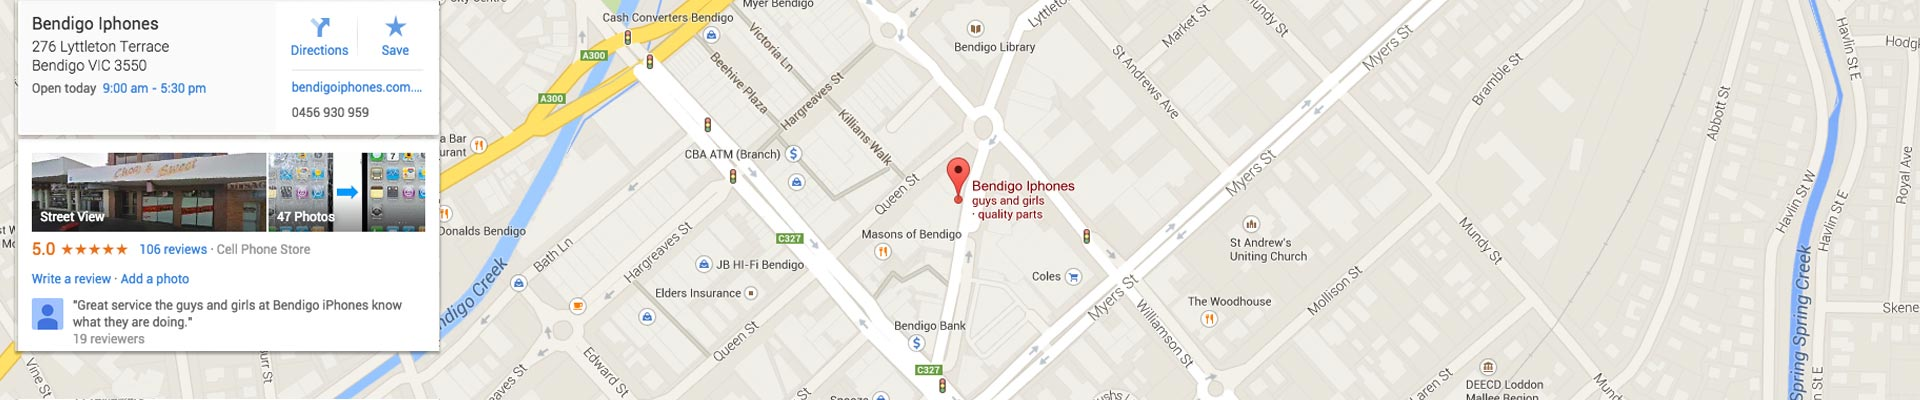 google_map_1920_bendigo_iphones_screen_repairs